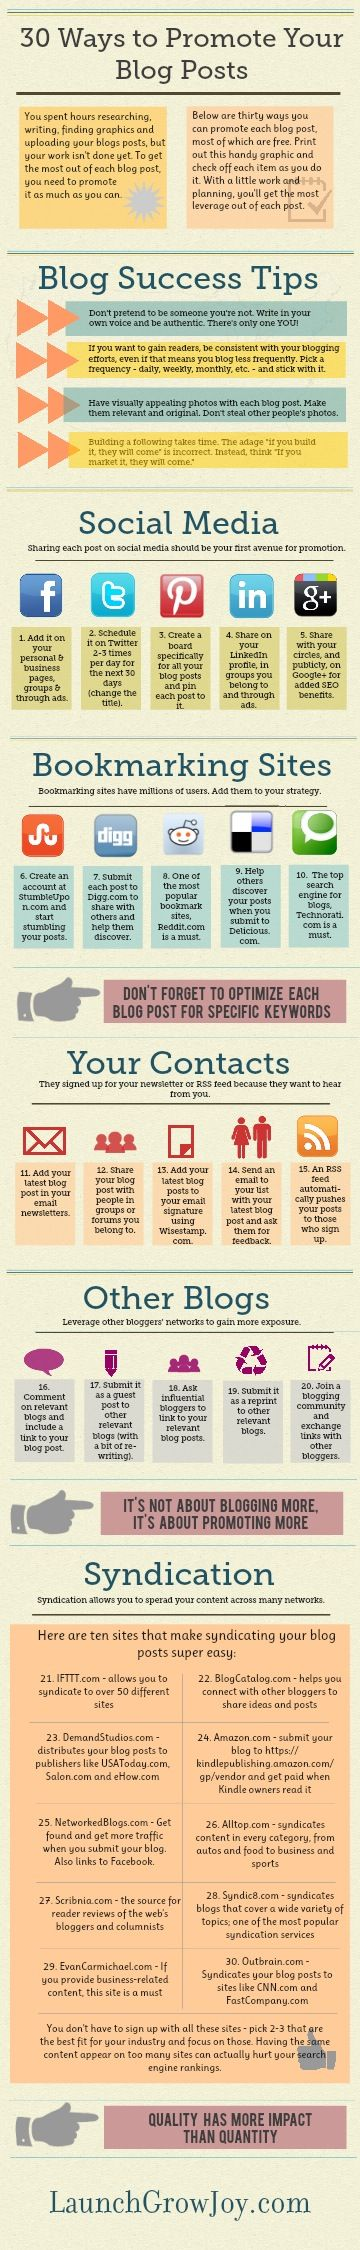 Great infographic on promoting your organization's online content